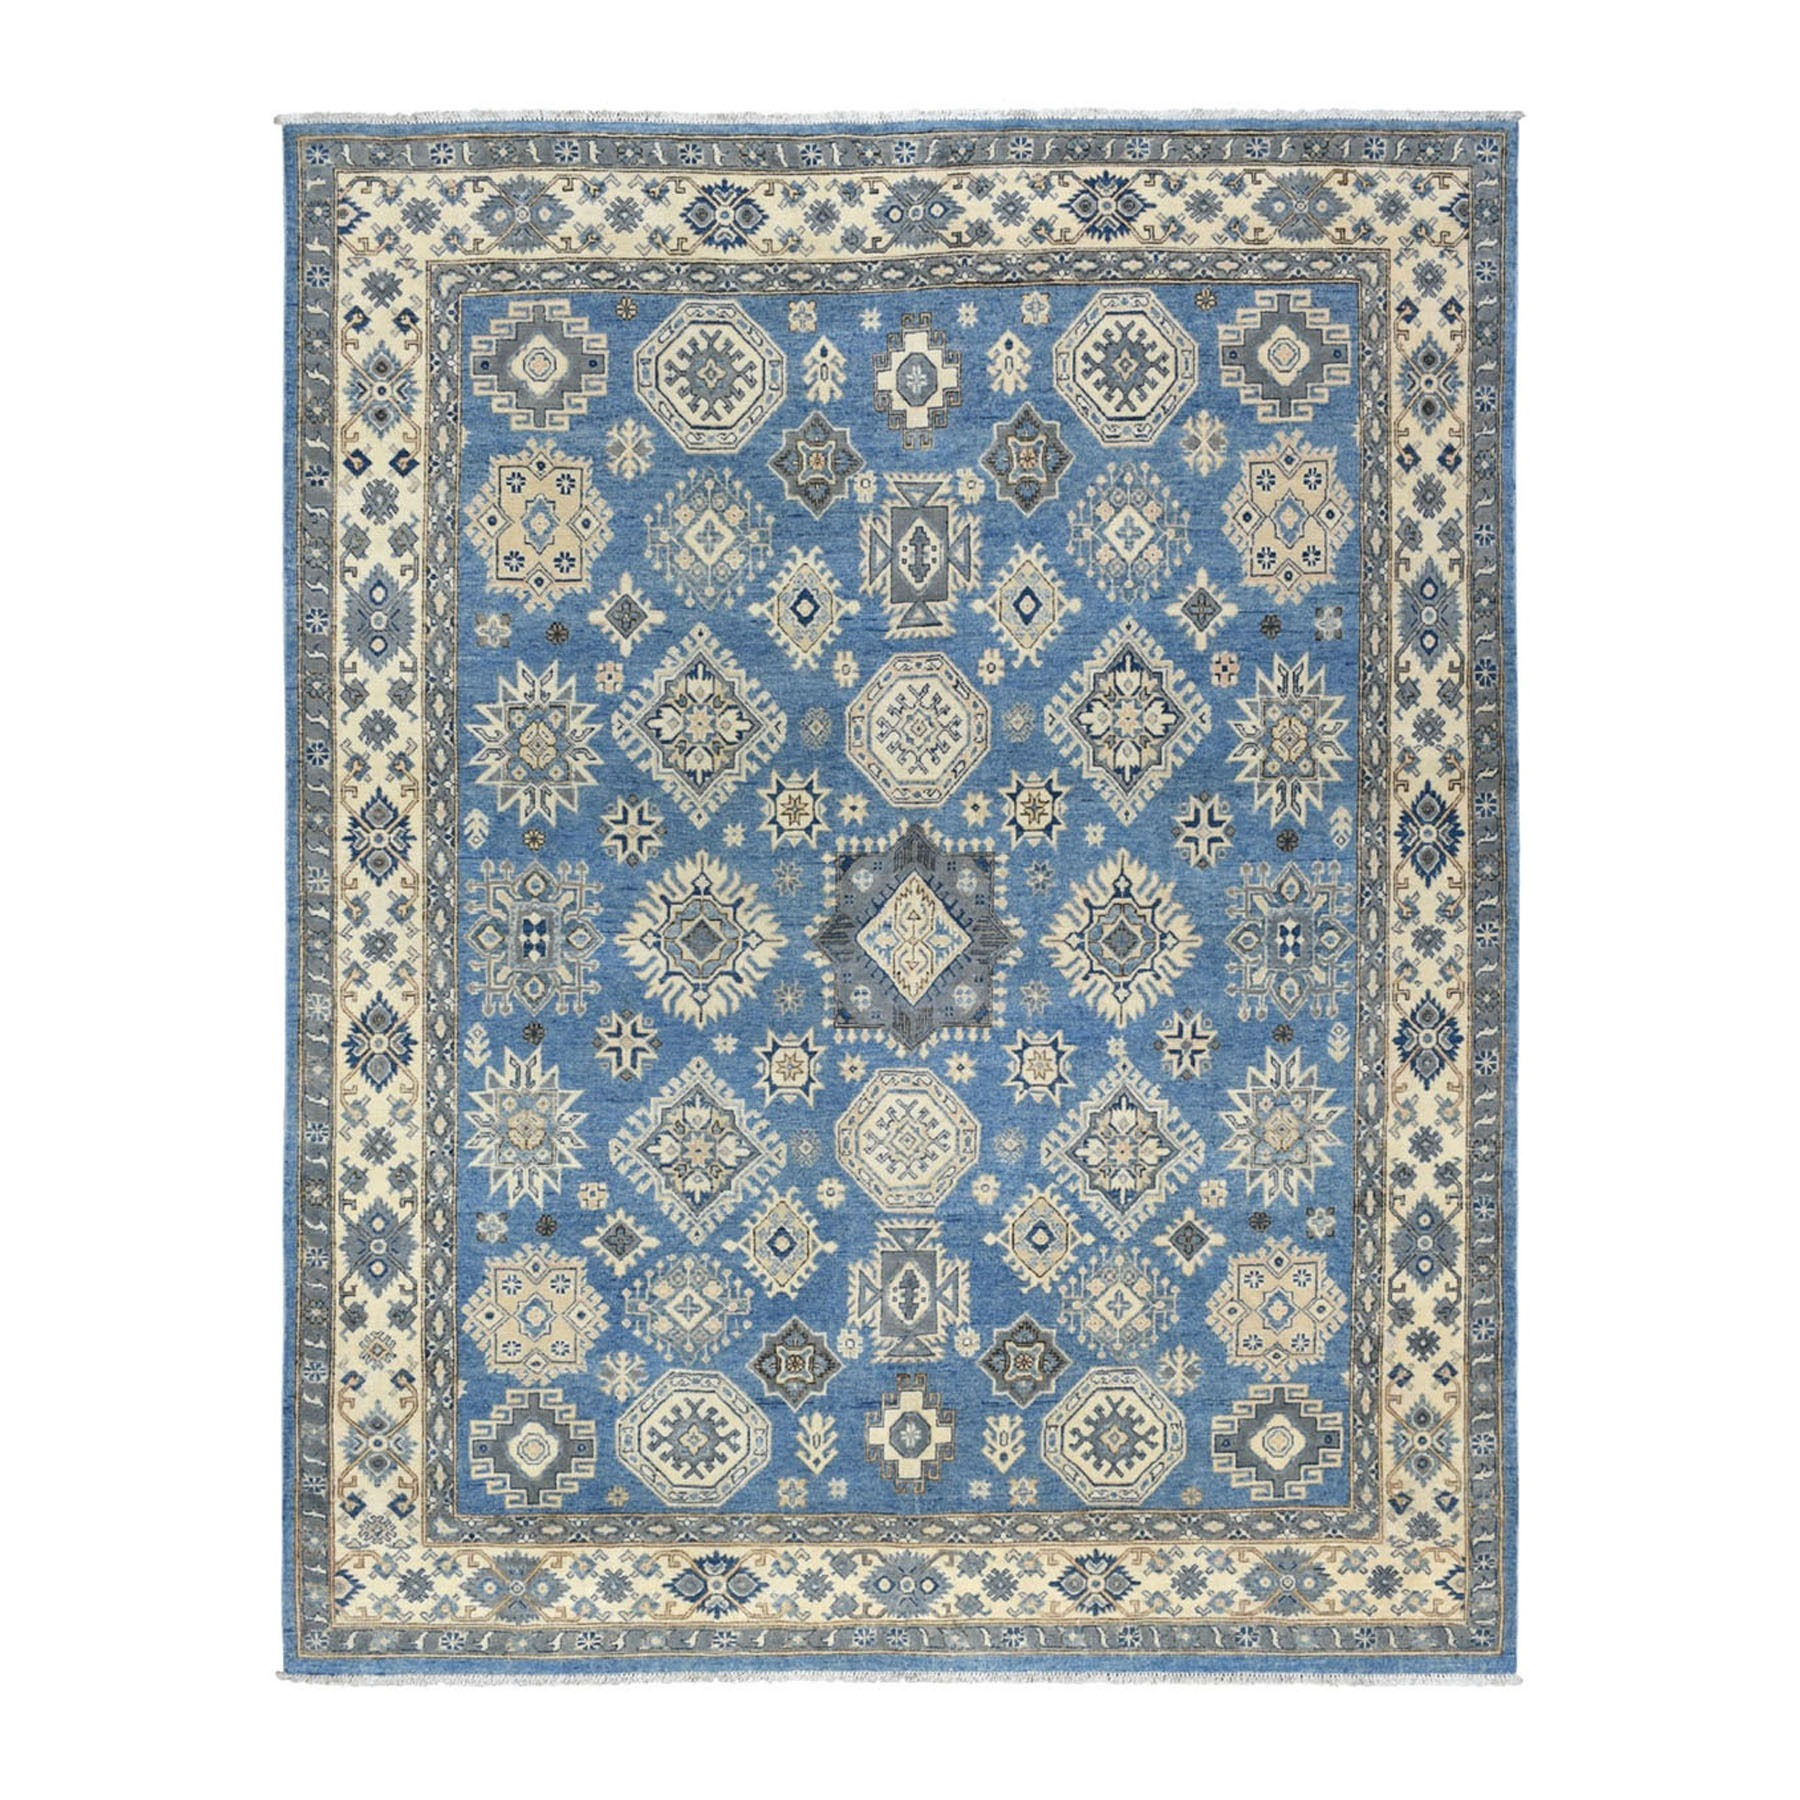 "8'X9'9"" Blue Afghan Vintage Look Kazak All Over Design Organic Wool Hand Knotted Oriental Rug moaed778"